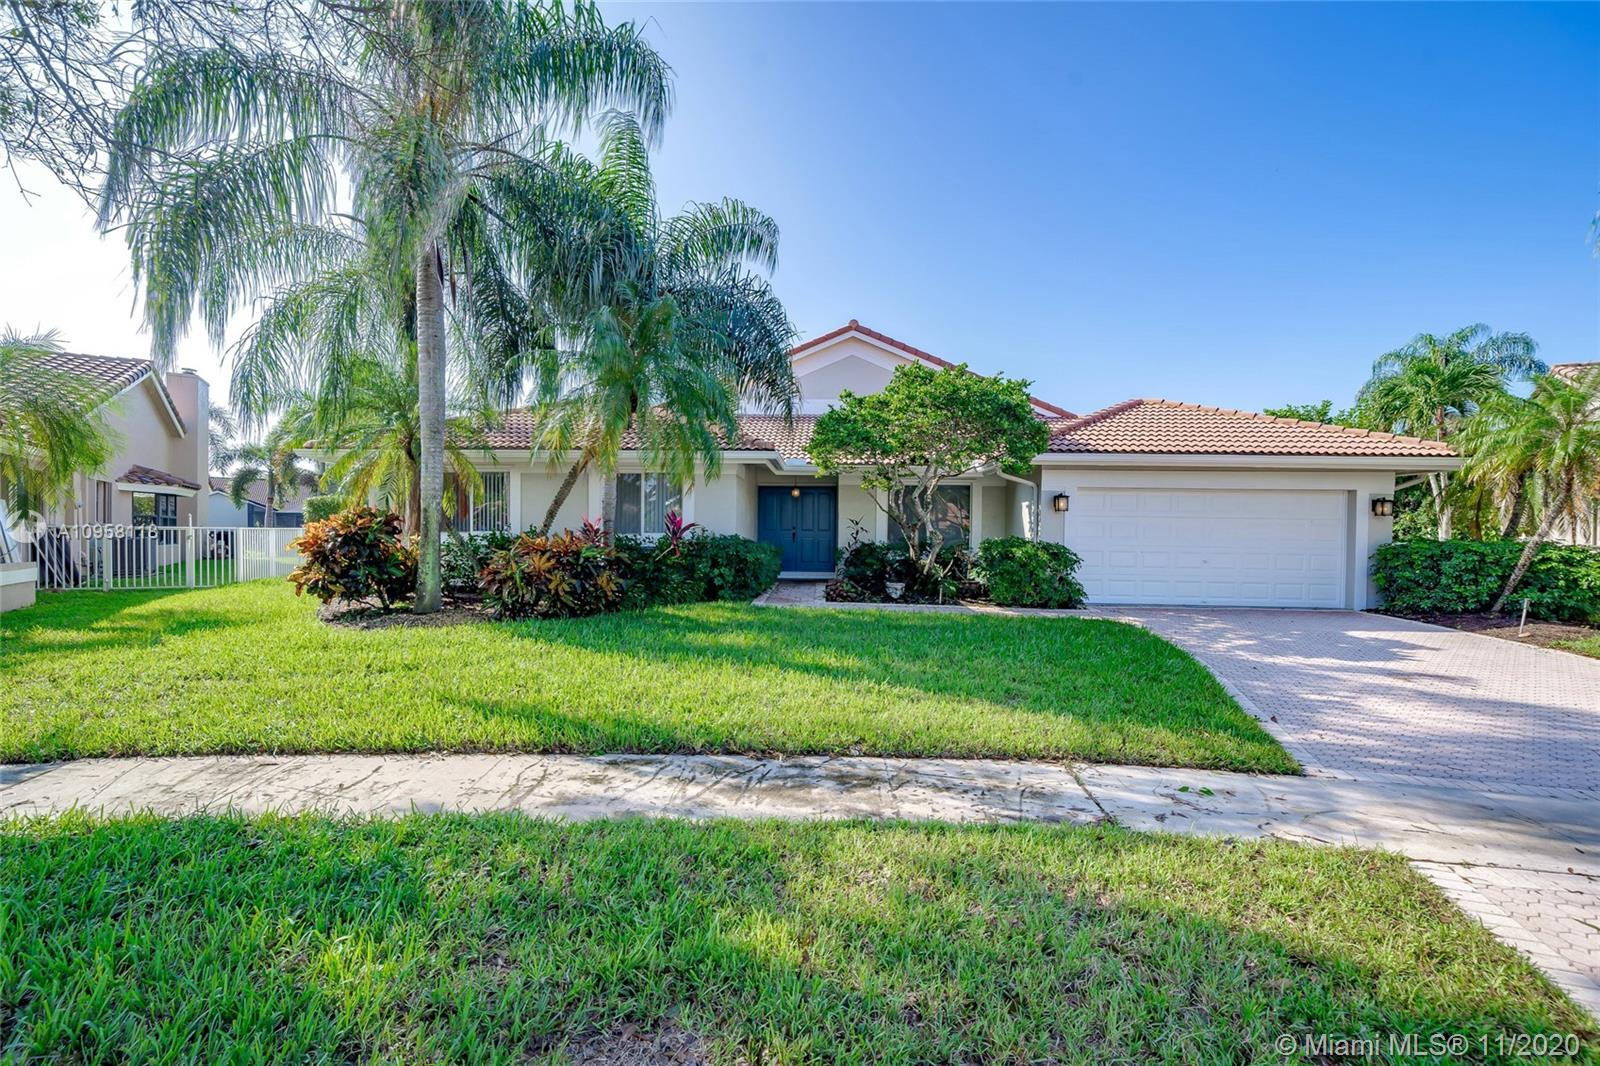 Incredible opportunity to own in the prestigious community of Westport in Plantation. This 4 bedroom 2.5 bath home sits on an oversized, point lot. Right as you walk in the front door you can see the gorgeous lake view. Relax in your private backyard with a beautiful pool, oversized patio space, and tons of room to entertain. Hurricane protection for the entire home, tile flooring throughout the main living area, volume ceilings, and much more. Roof is 2006. Centrally located near all your major highways, shopping, grocery, malls, and much more.